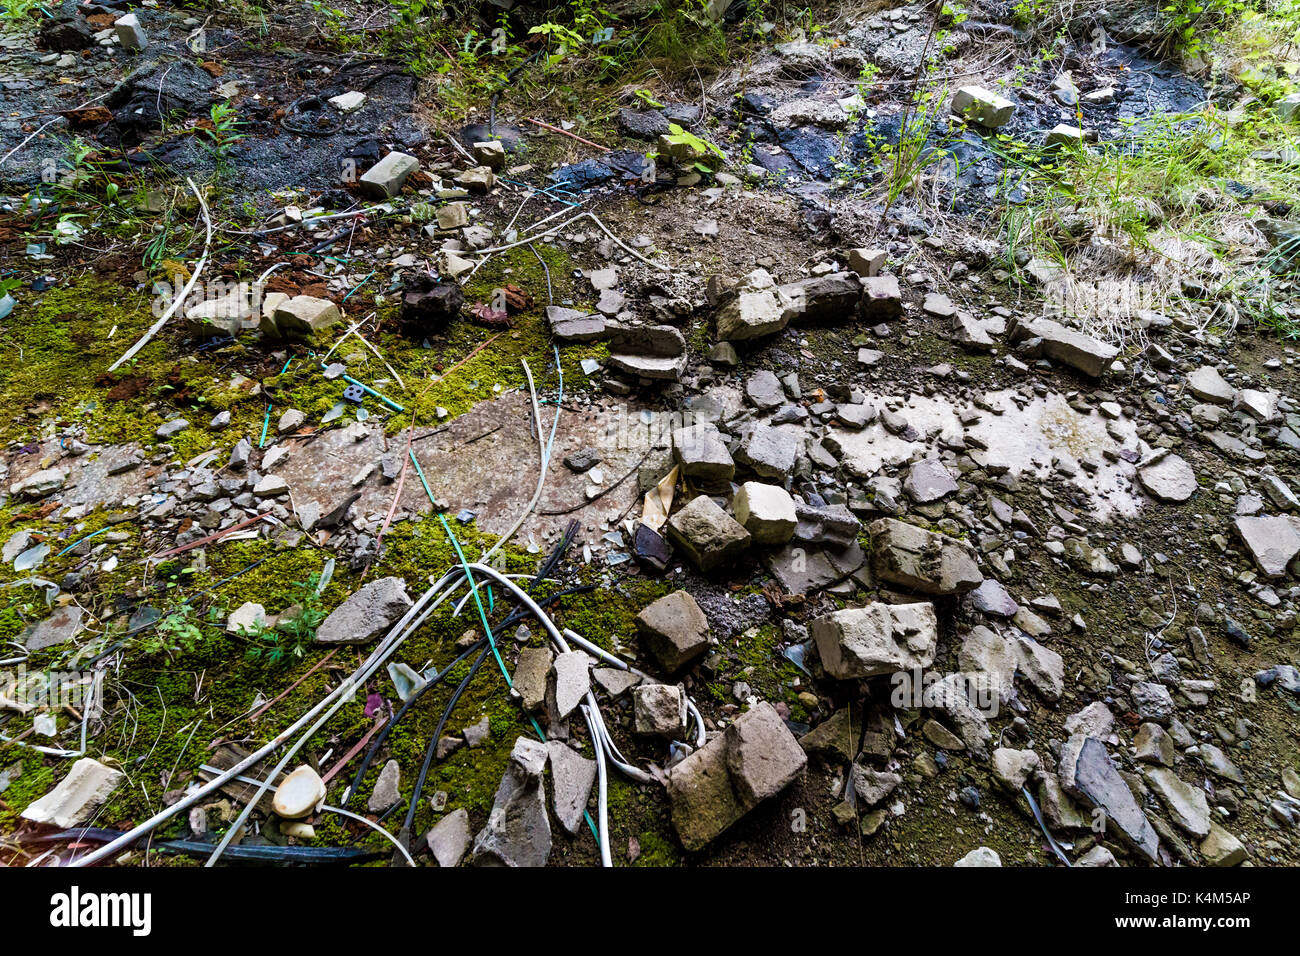 Rubble on the ground with broken bricks and stones and wires - Stock Image